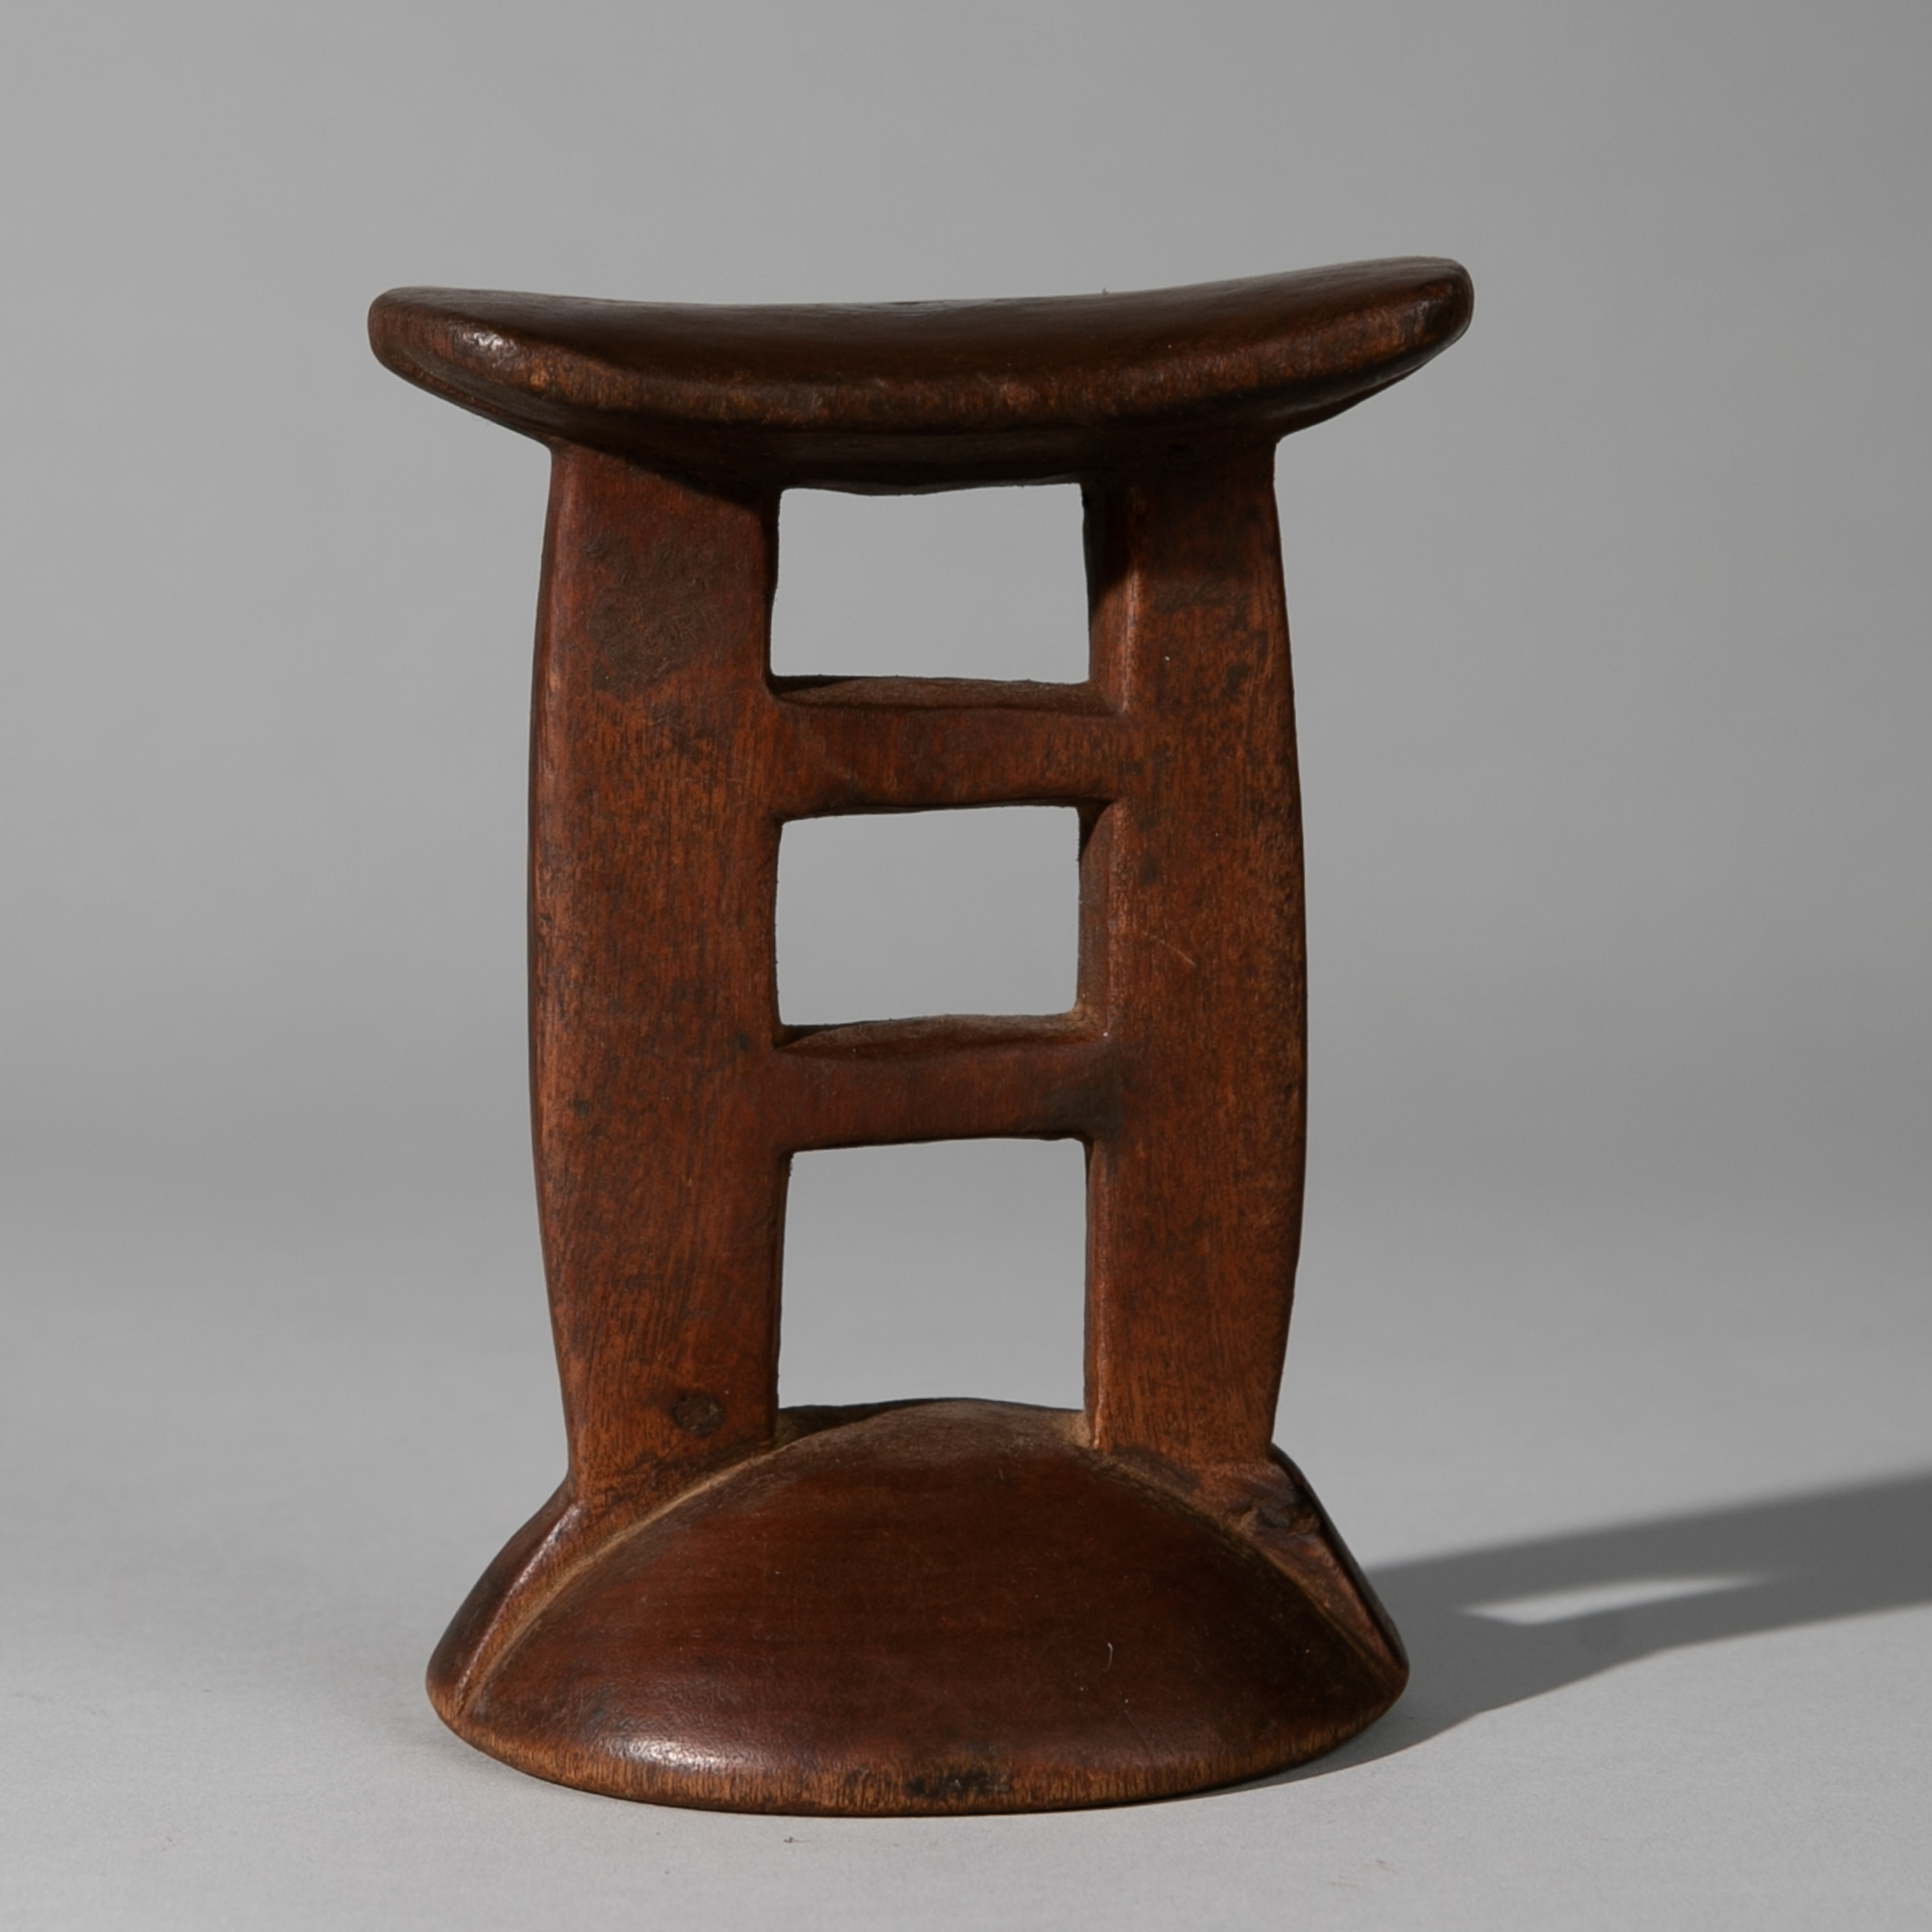 Sold HZ-AN EXCELLENT HIMBA HEADREST FROM NAMIBIA ( No 3896 )